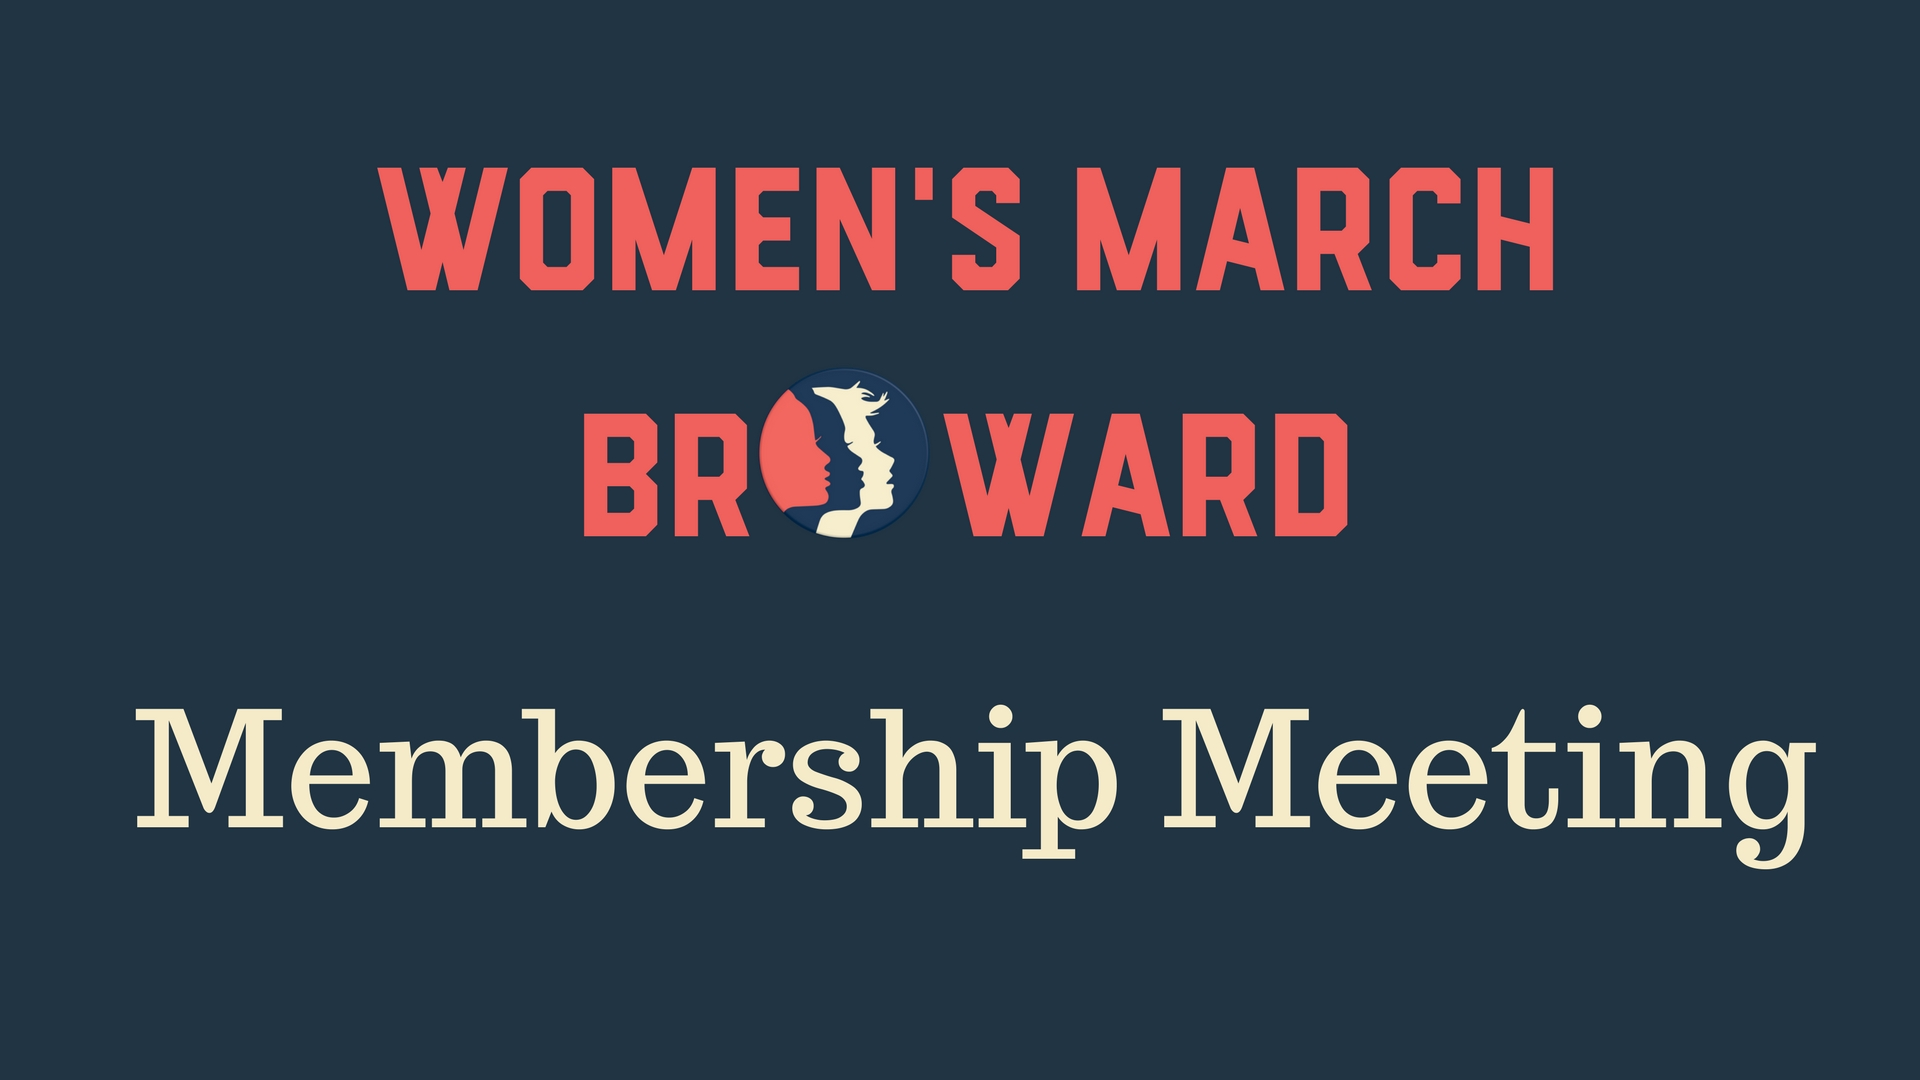 5-10-18: Membership Meeting - Please join Women's March Broward at our Membership Meeting where we will be hearing from Alexandra Elizabeth about the Second Chances Campaign. Alex is the Women's March Palm Beach Chapter Co-Captain and she is the Vice-President of Women's March Florida. She has been fighting tirelessly on the Second Chances Florida campaign. This campaign is advocating for the 1.4 million Floridians whose voting rights have been taken away due to a felony on their record. Alex will discuss with us where the campaign is today and how we can help them pass Amendment 4 which will be on the Florida ballot in November. We are very excited to have Alex join us!We will also be updating everyone on our current Power to the Polls work in Broward County. Come out and learn how you can join us in registering voters, researching local, state, and national candidates, and all the 2018 legislative ballot items.